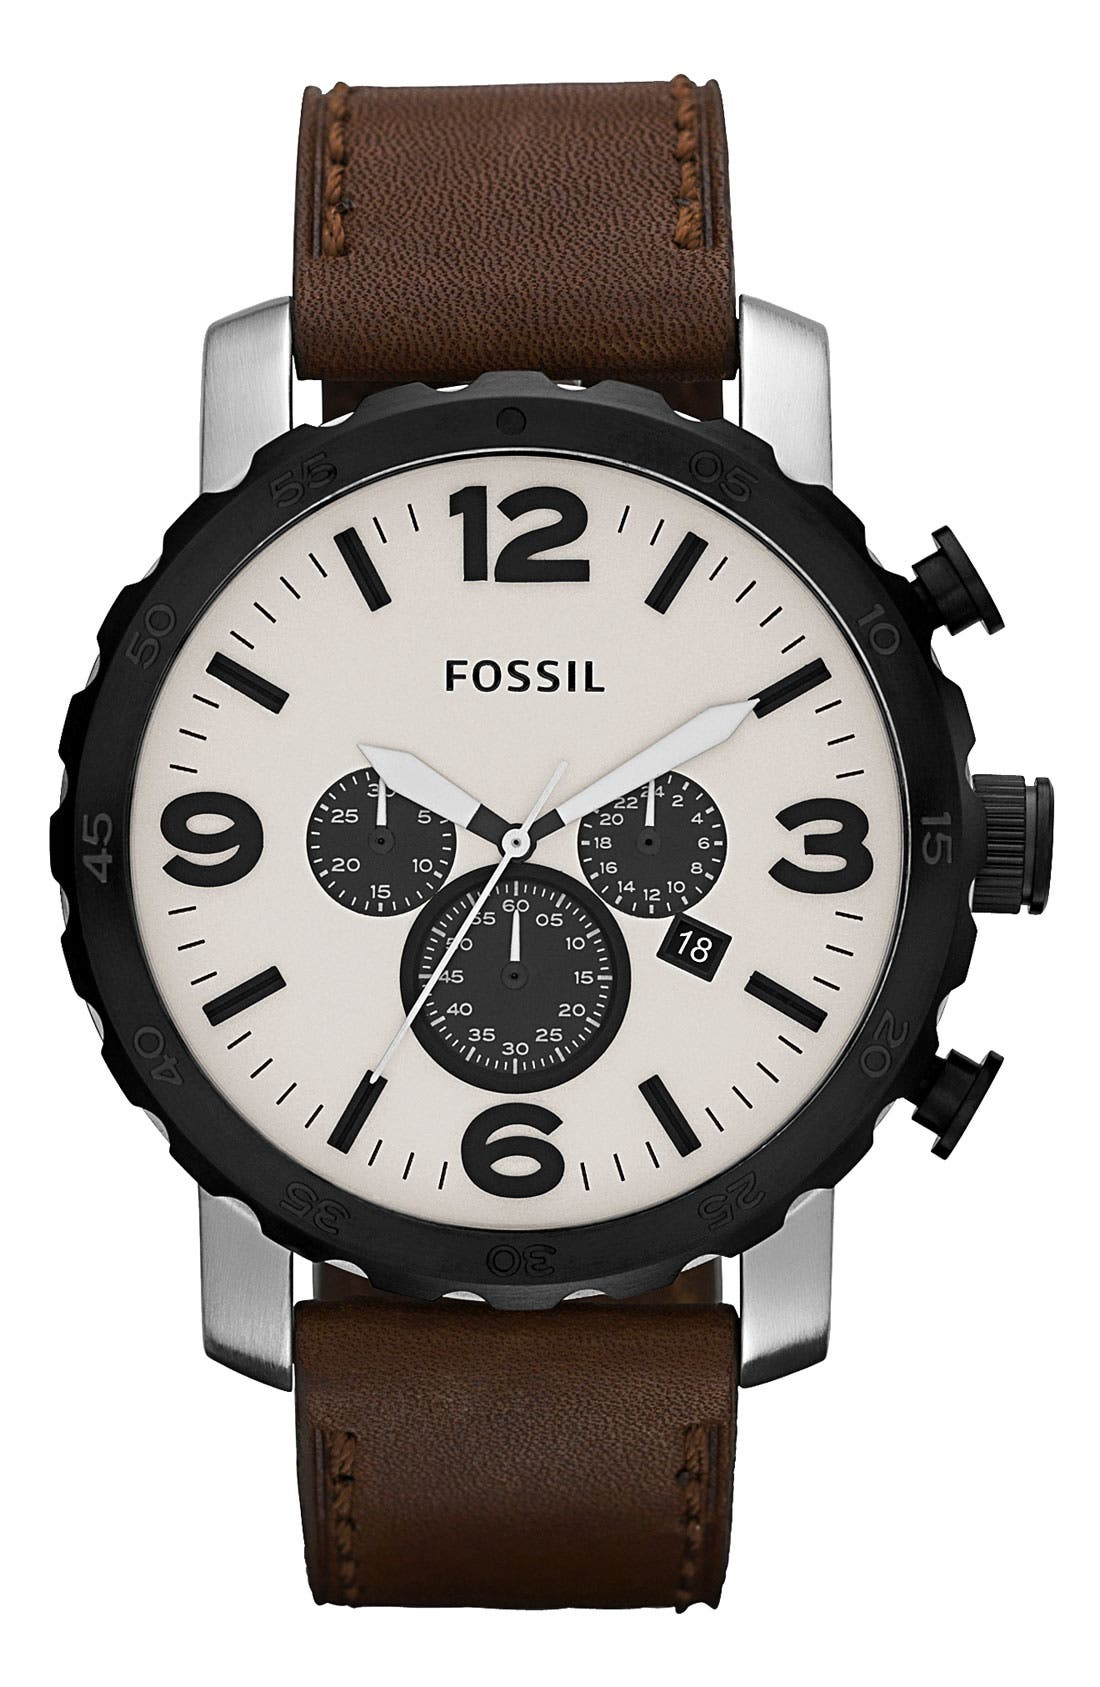 Main Image - Fossil 'Nate' Chronograph Leather Strap Watch, 50mm